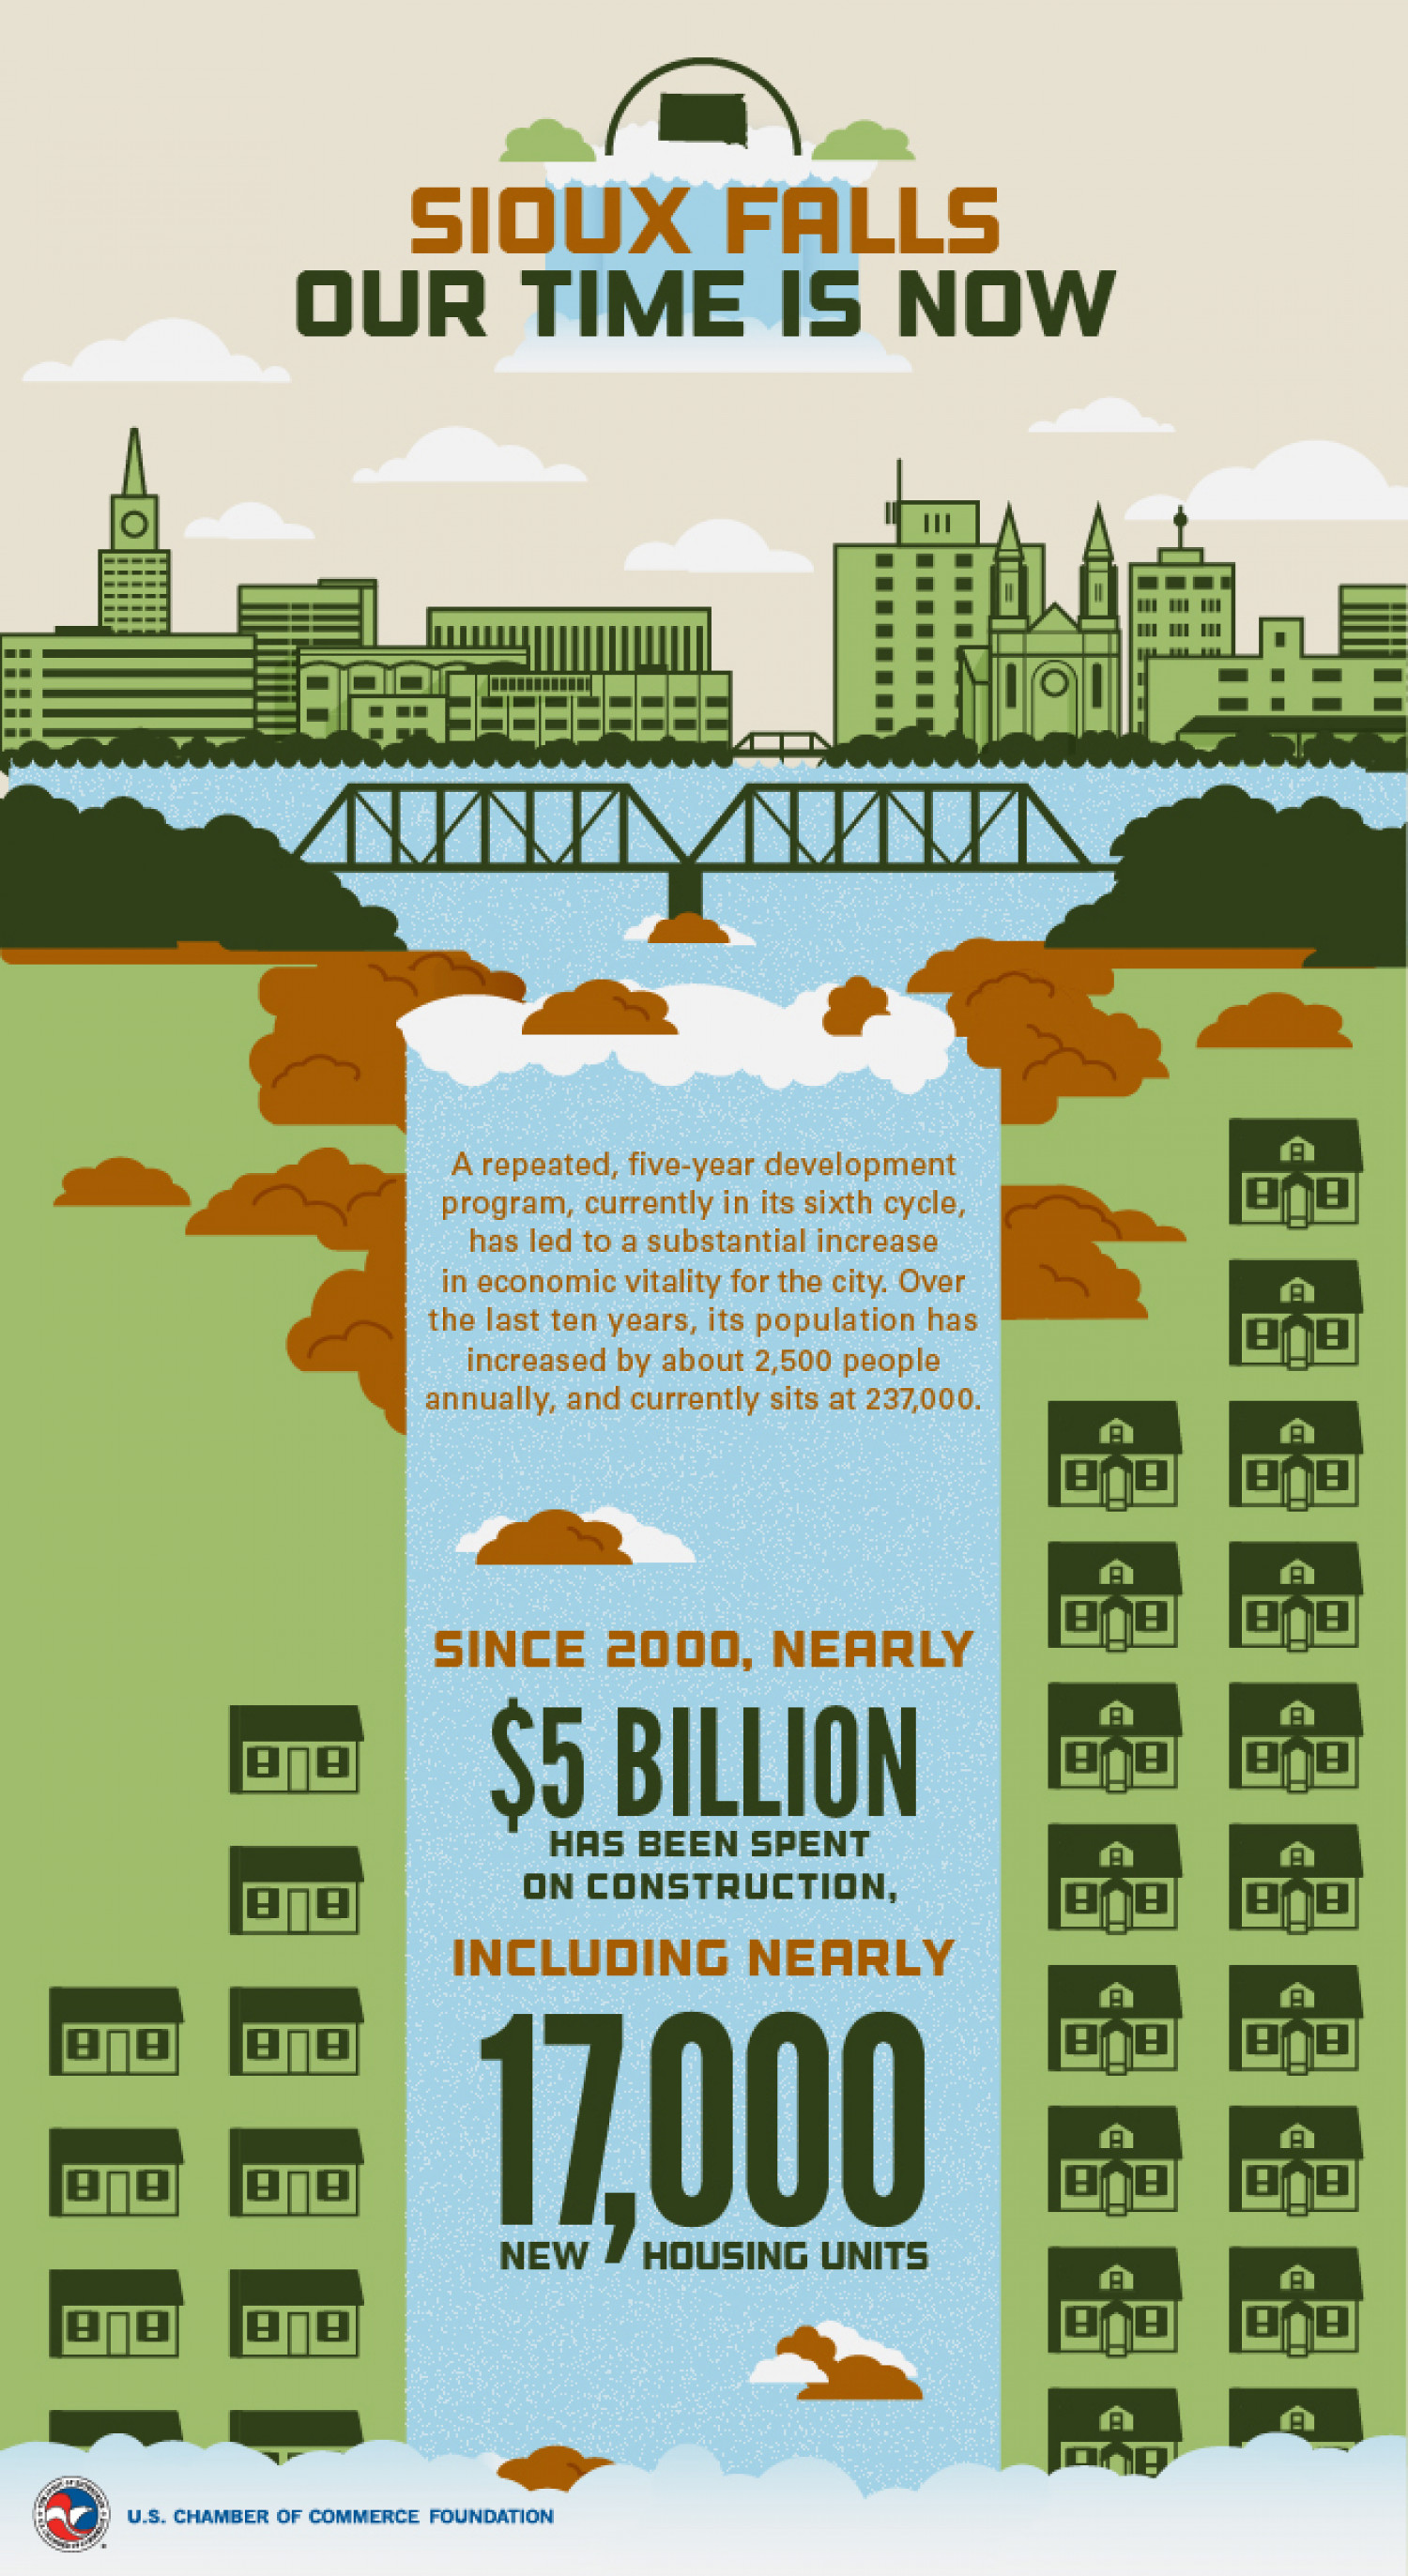 Sioux Falls, SD: An Enterprising City Infographic